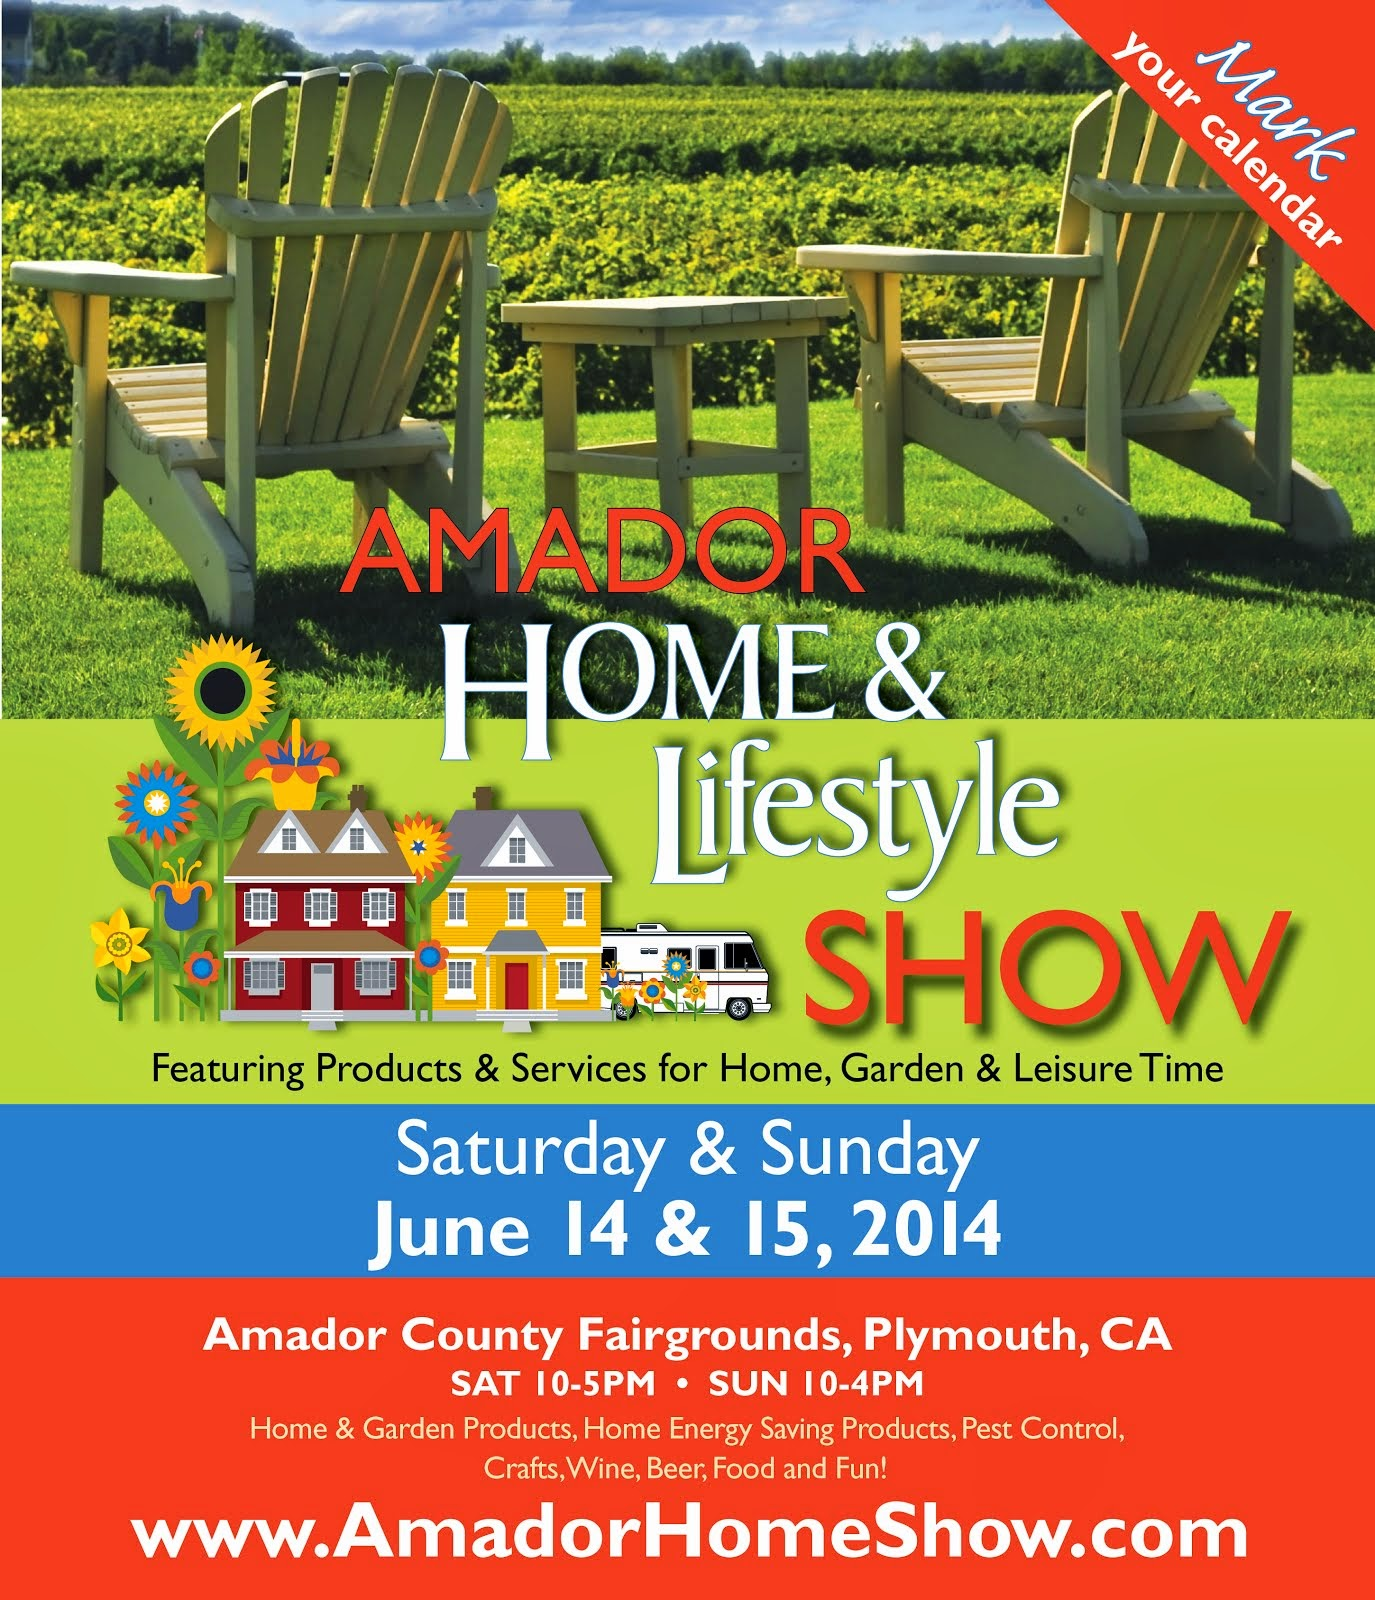 Amador Home & Lifestyle Show - June 14 & 15